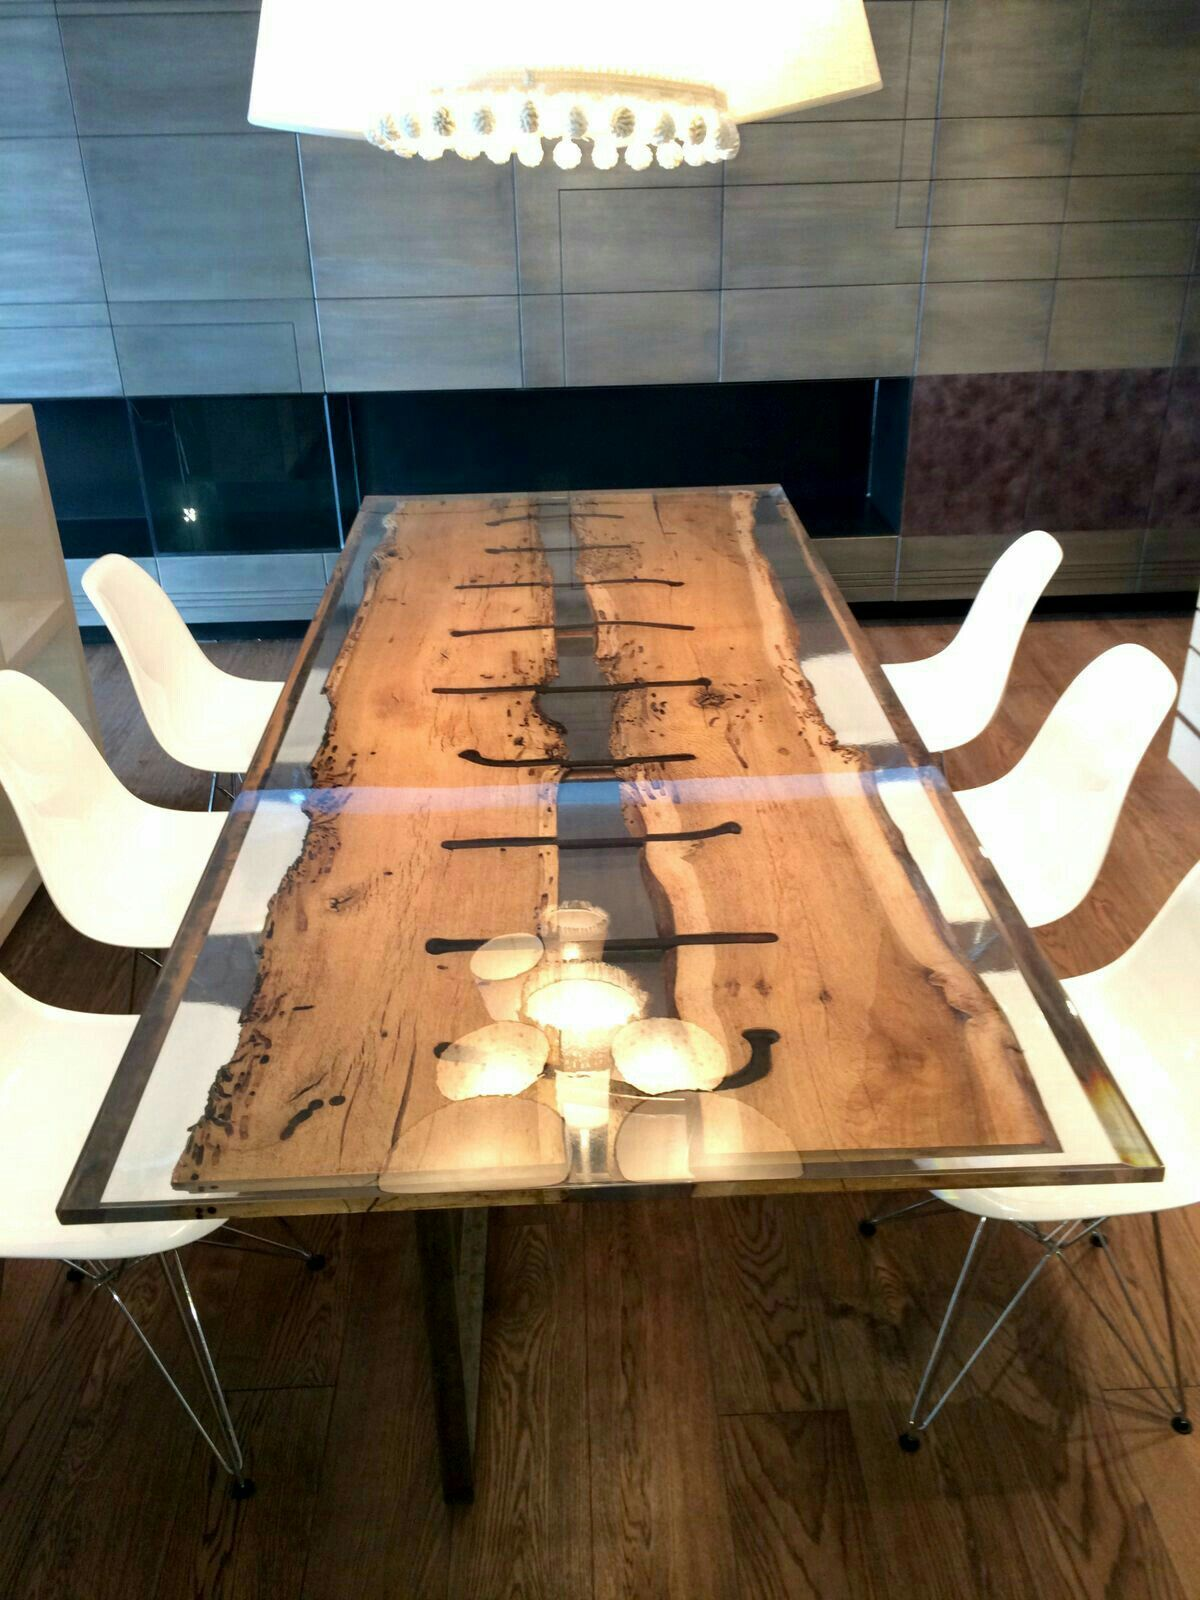 Pin By Aneek Das On Table In 2018 Pinterest Table Mobilier De